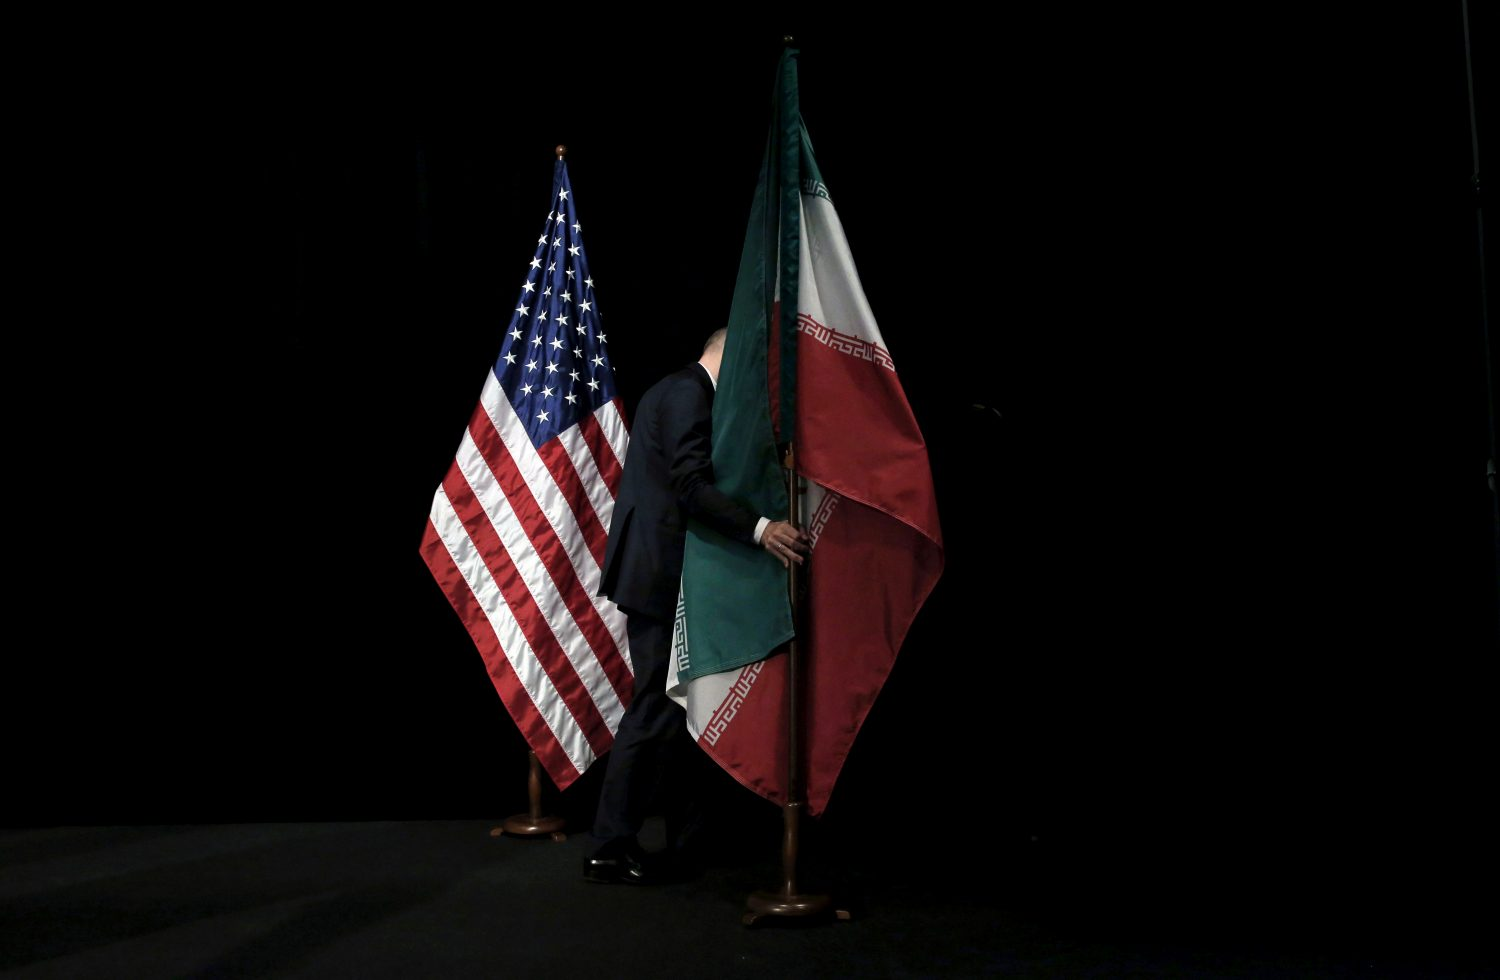 FILE PHOTO: A staff member removes the Iranian flag from the stage after a group picture with foreign ministers and representatives of the U.S., Iran, China, Russia, Britain, Germany, France and the European Union during Iran nuclear talks at the Vienna International Center in Vienna, Austria, July 14, 2015. REUTERS/Carlos Barria